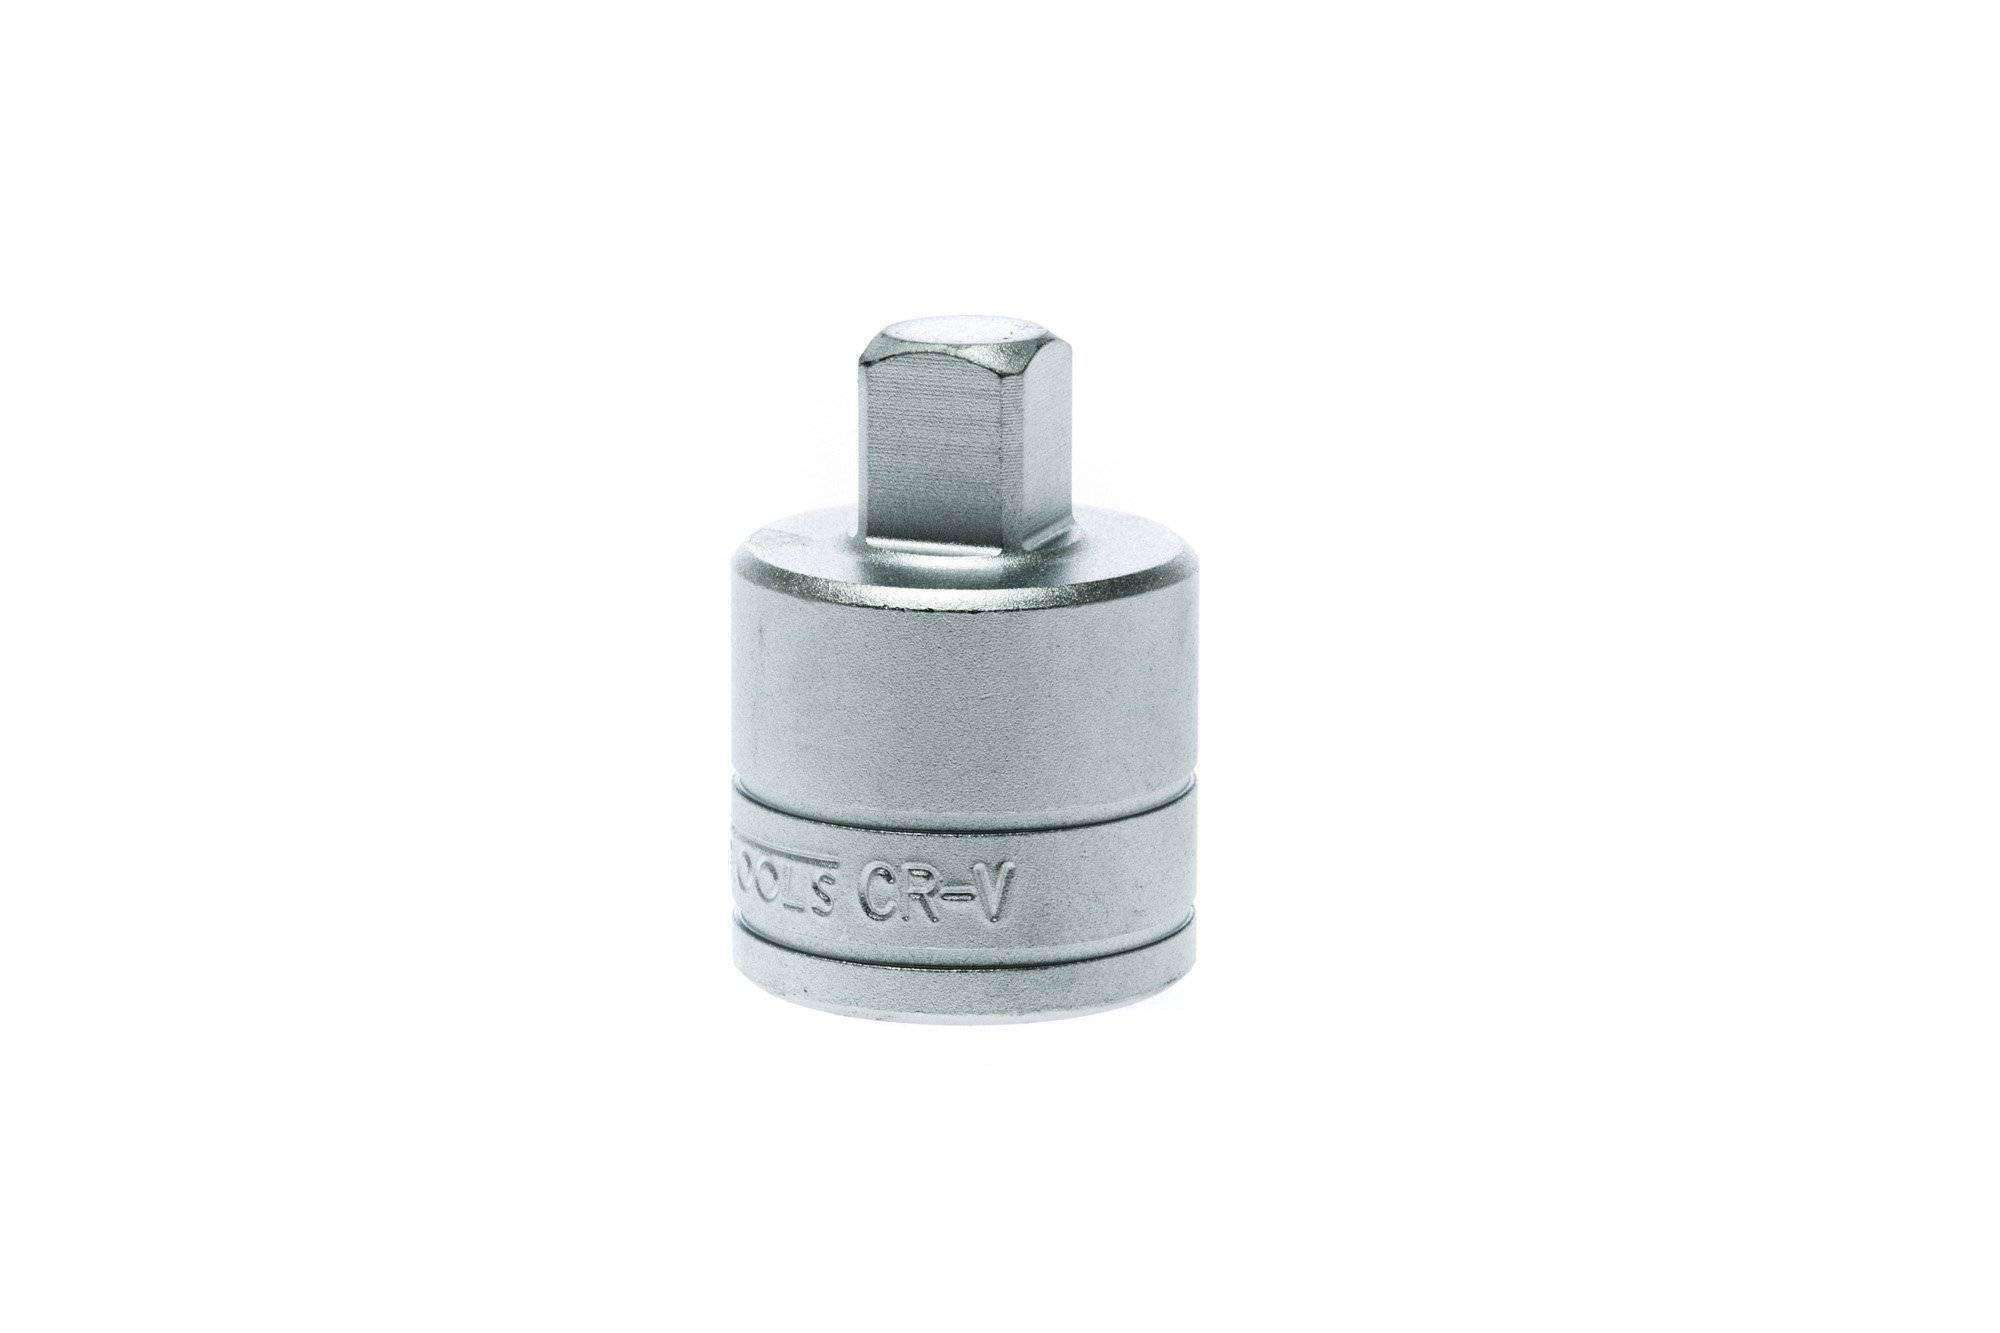 Teng Tools - 3/4 Inch Drive 3/4 Inch Drive Female: 1/2 Inch Drive Male  Adaptor - M340086-C